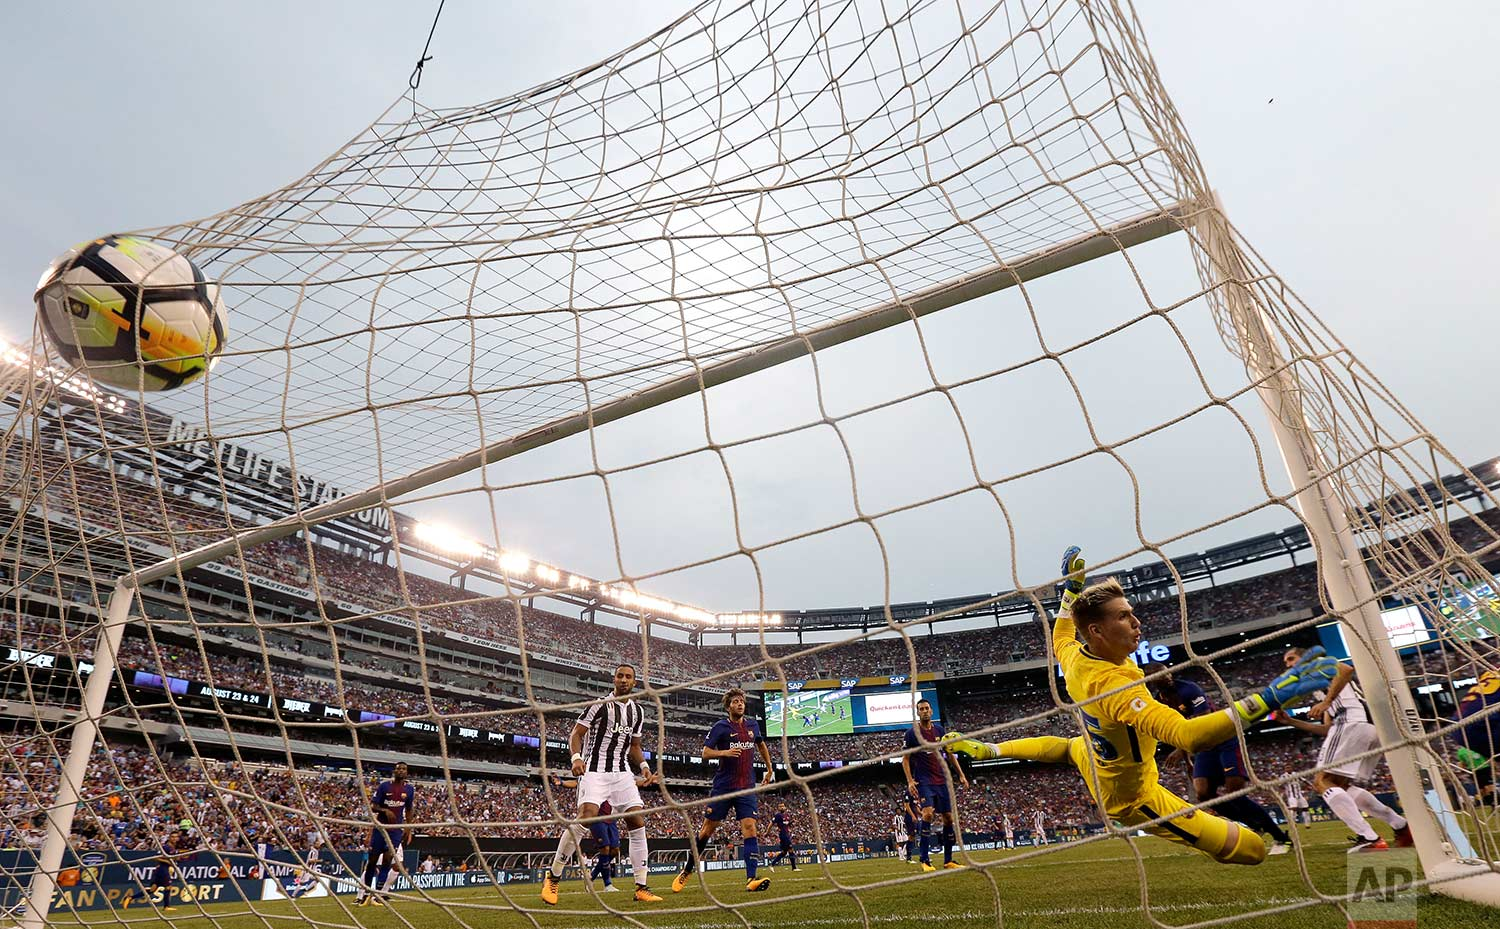 A header by Juventus Giorgio Chiellini enters the net of Barcelona goalkeeper Adrian Ortola, right, for a goal during the second half of an International Champions Cup soccer match, Saturday, July 22, 2017, at MetLife Stadium in East Rutherford, N.J. (AP Photo/Julio Cortez)